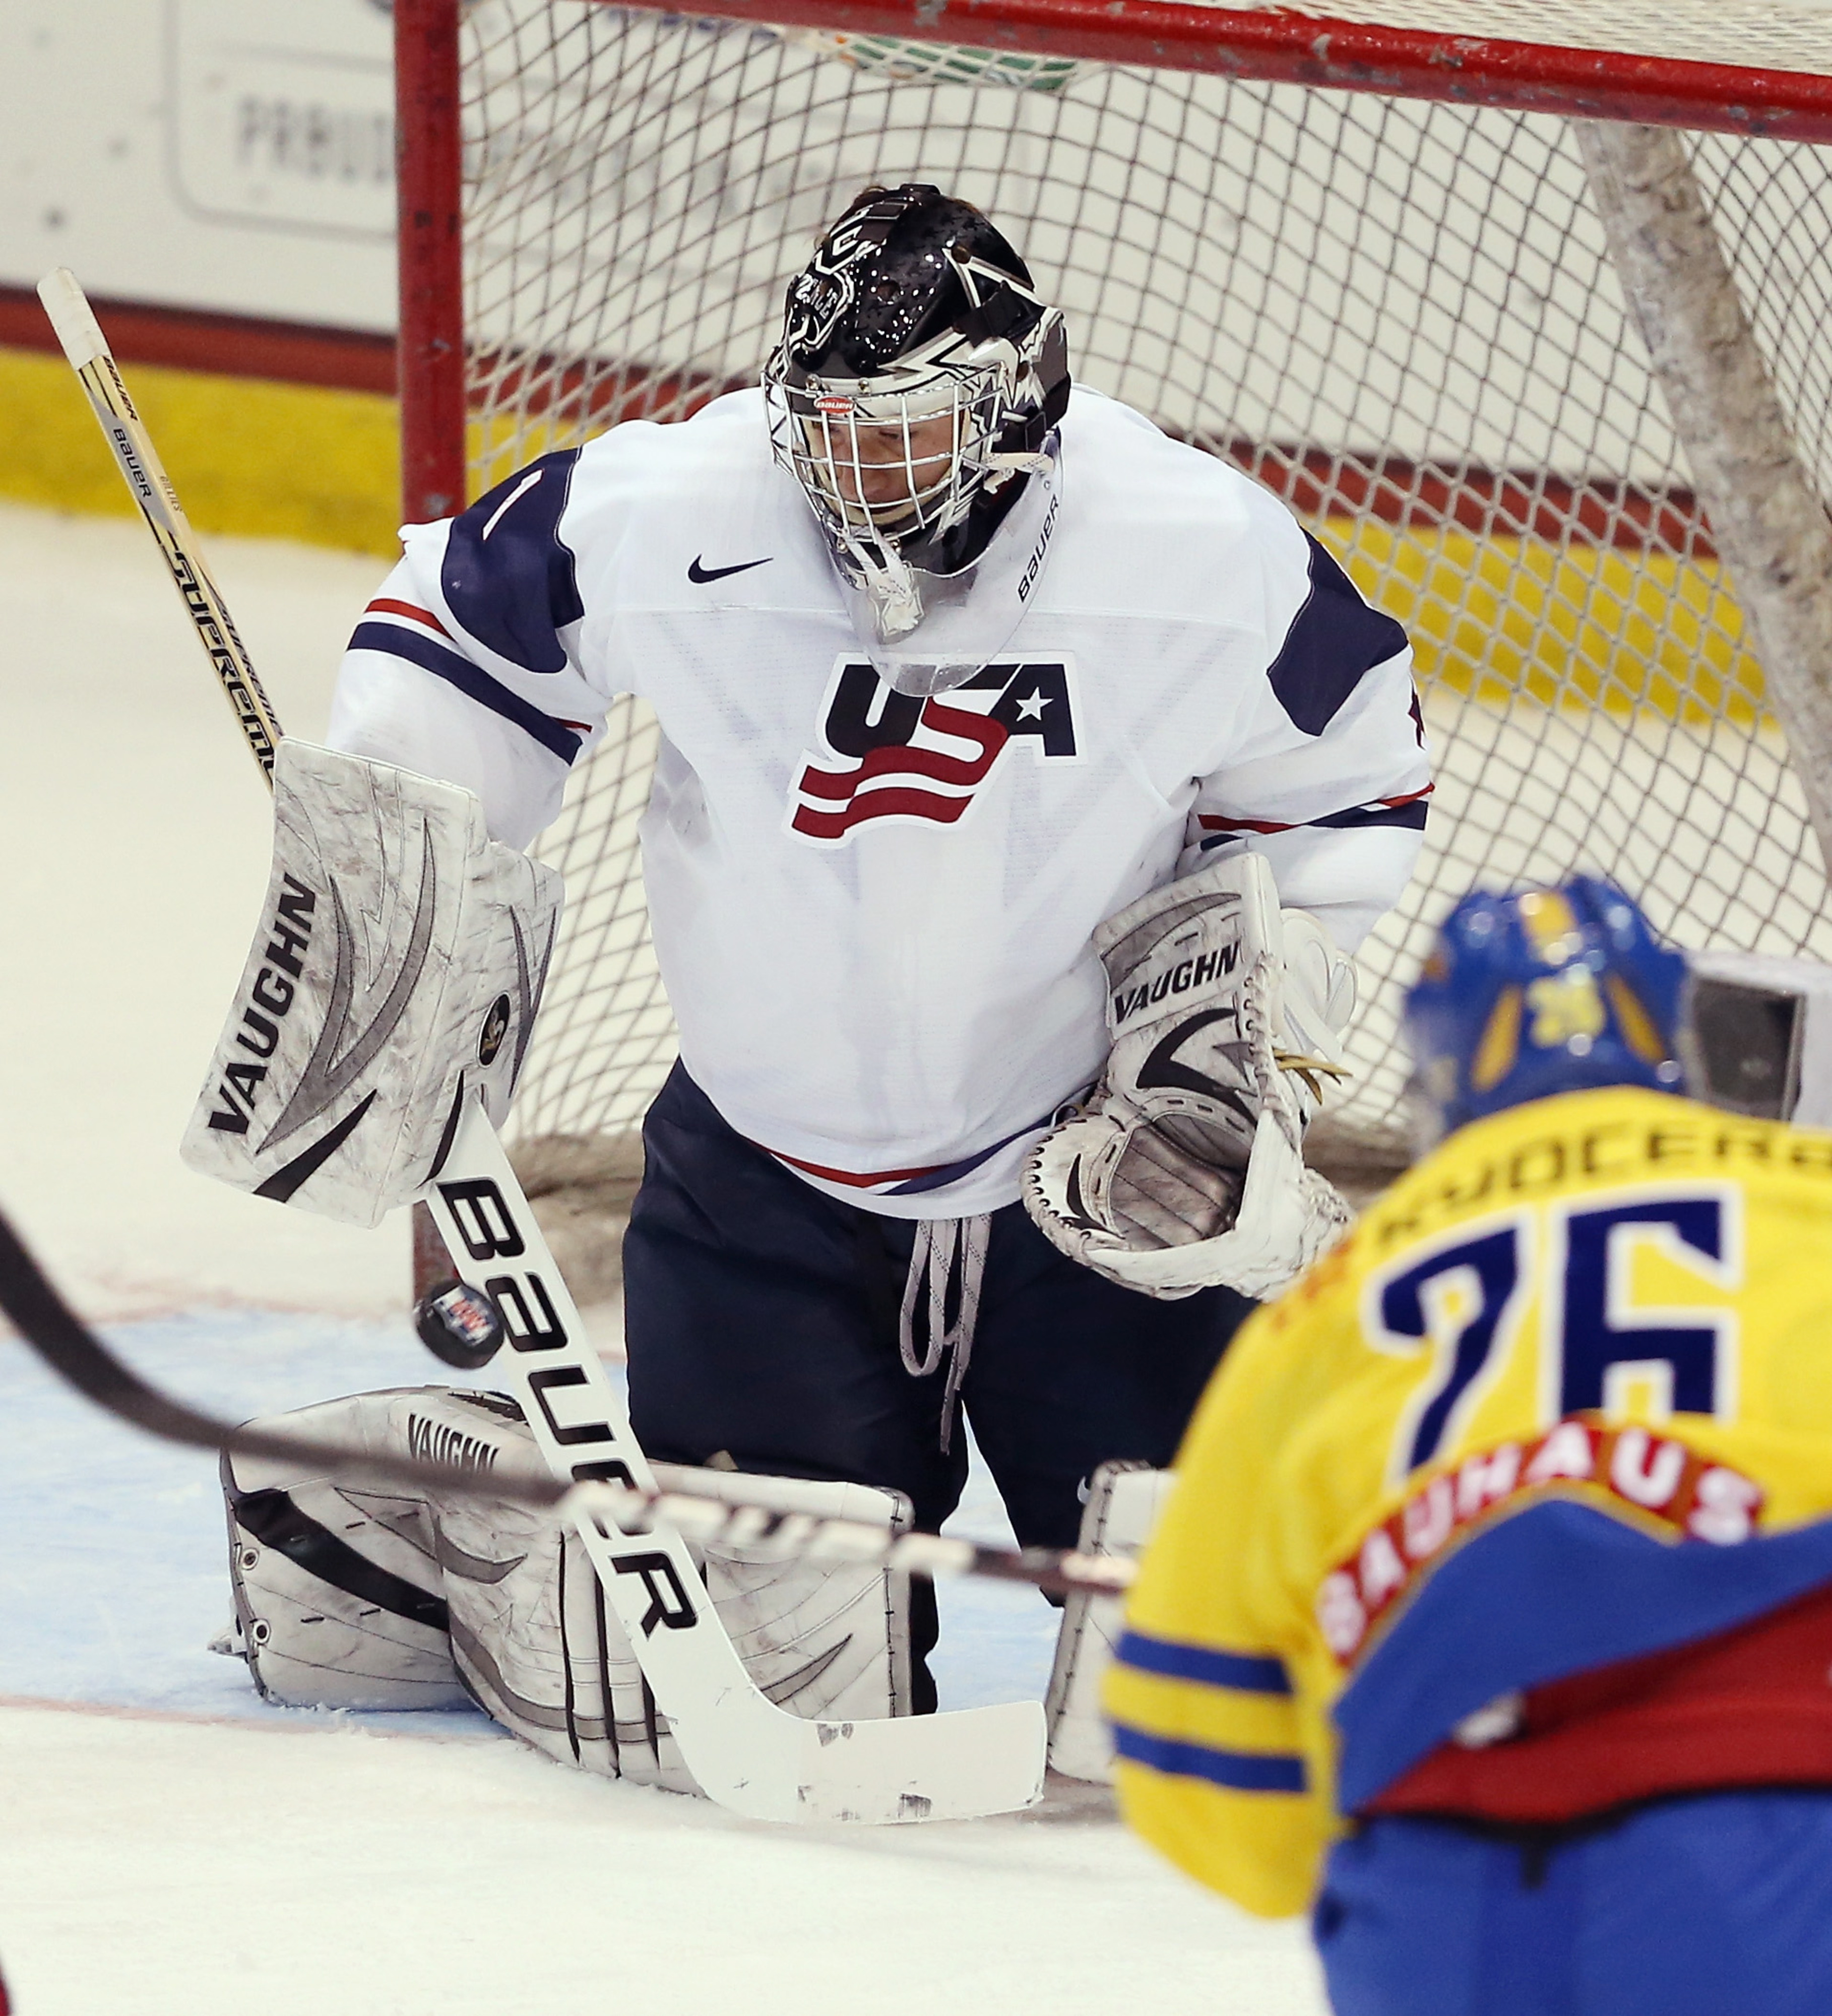 Team USA will need to rely on the steady goaltending of Providence's Jon Gillies